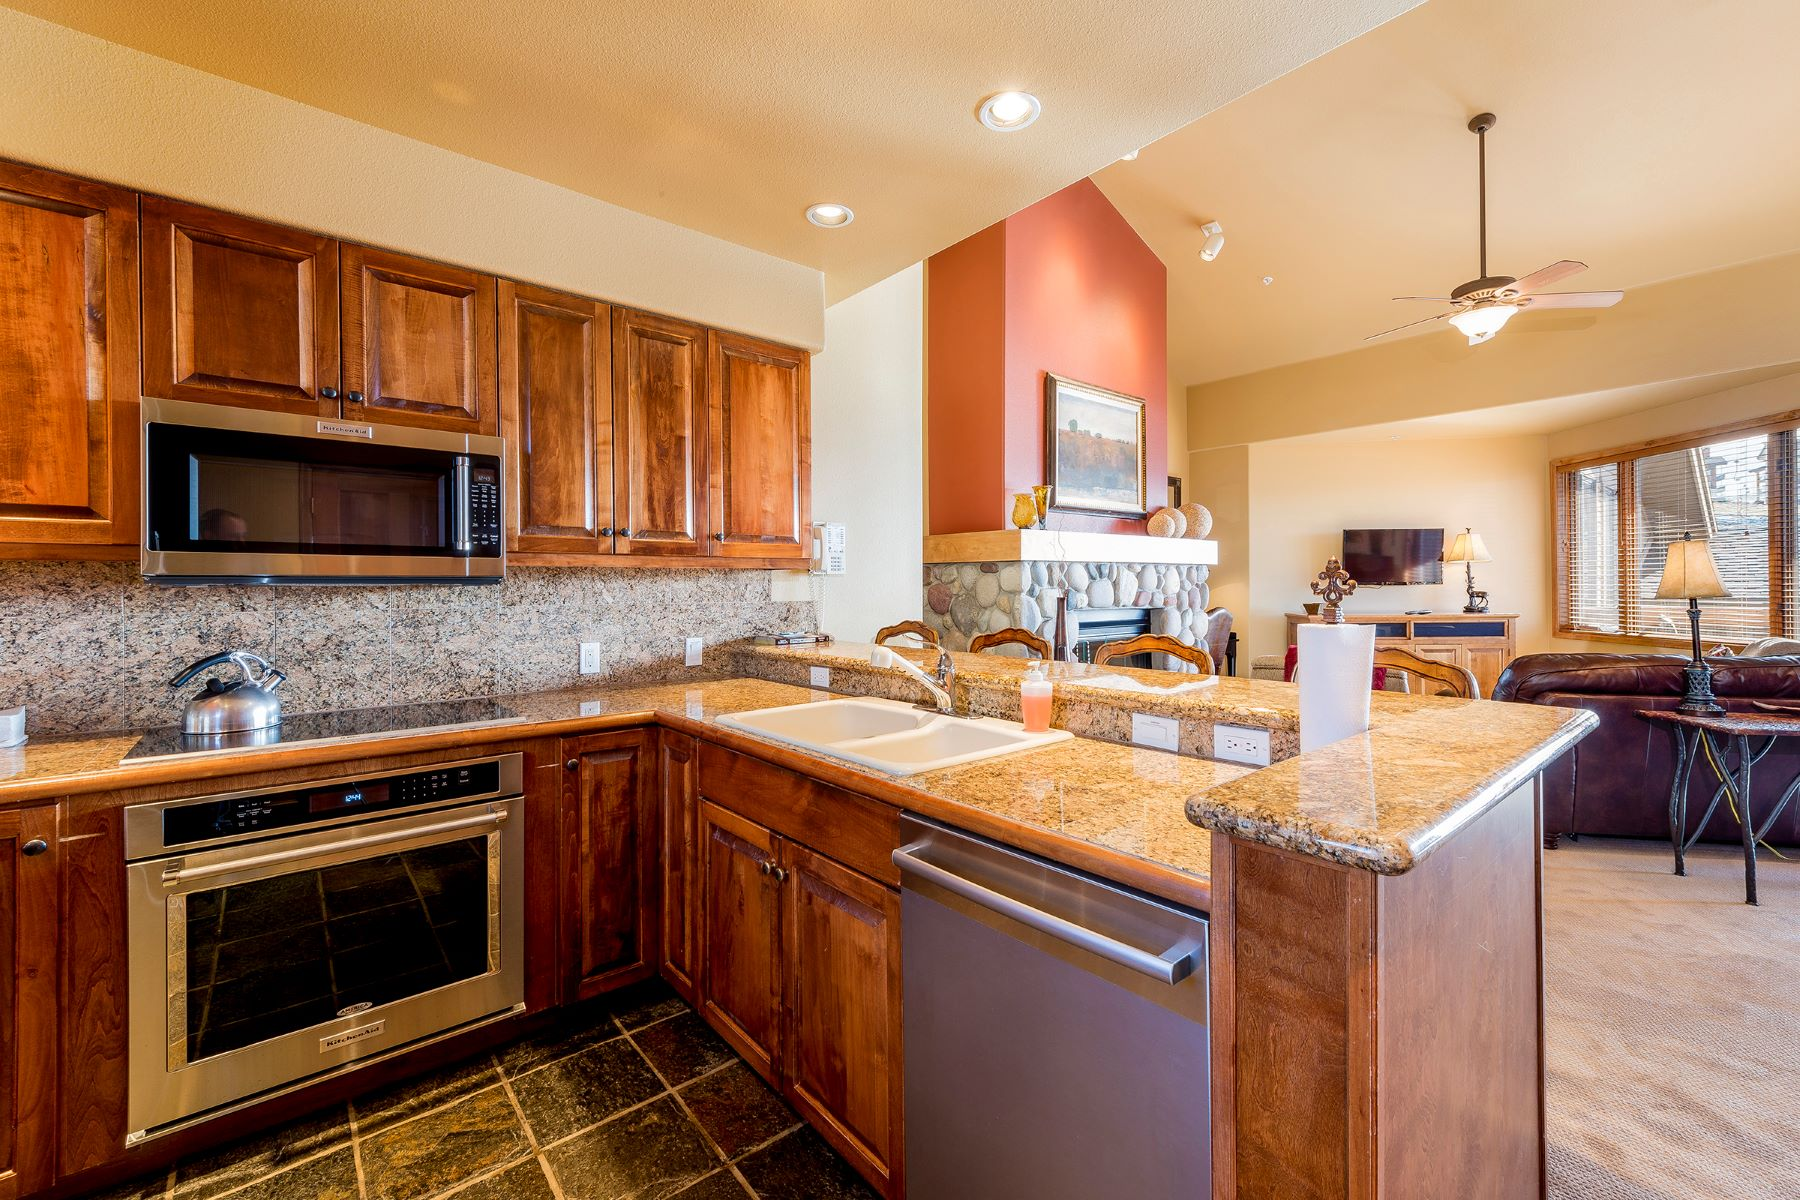 Additional photo for property listing at Christie Club Condo 2355 Ski Time Square, #336 Steamboat Springs, Colorado 80487 United States